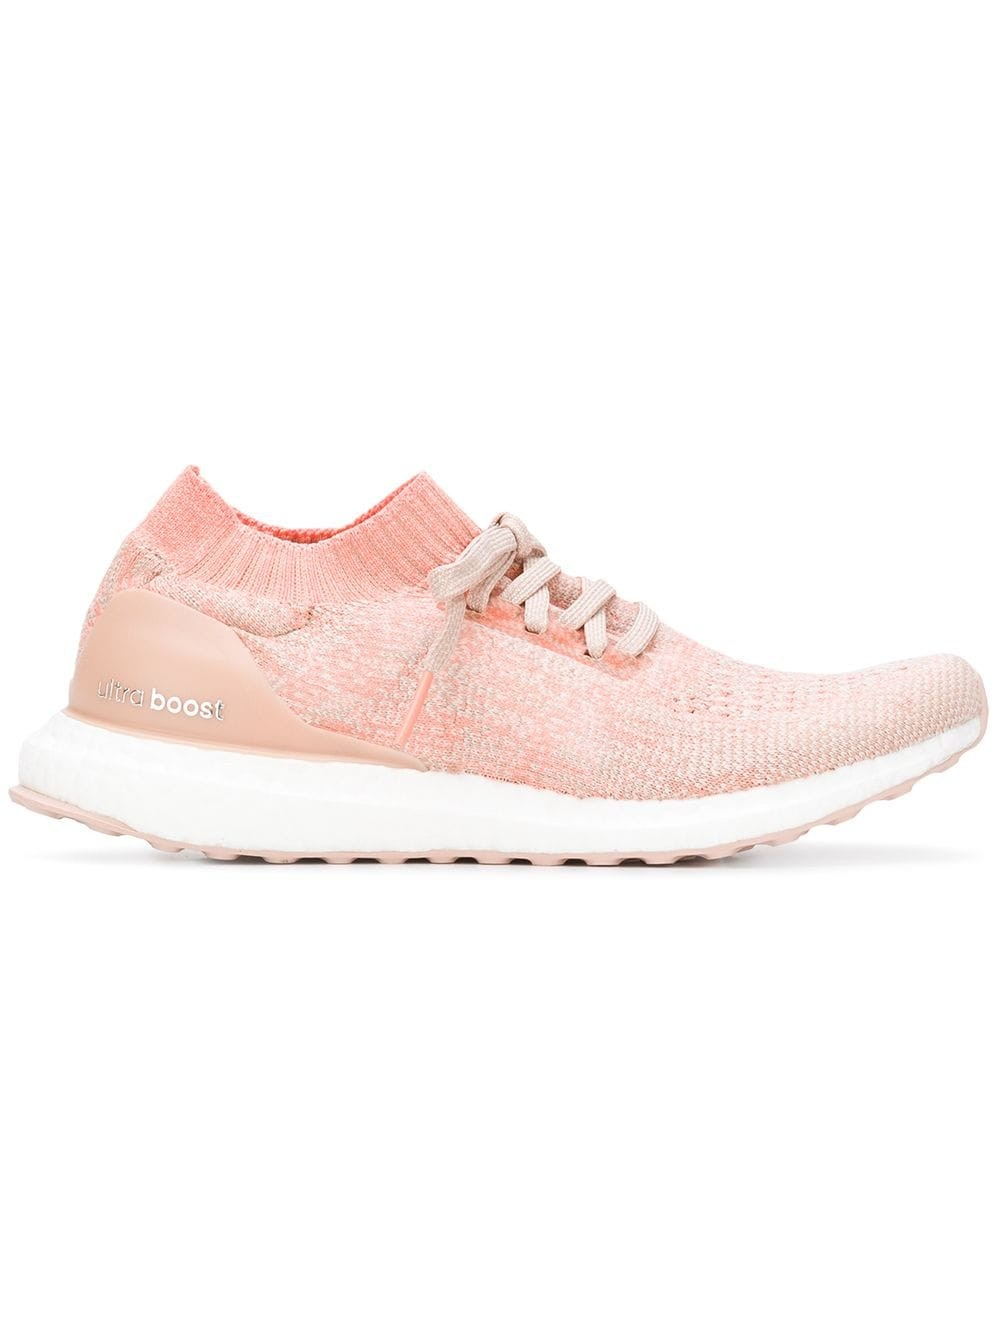 Adidas Mujer Ultraboost Uncaged 'Ash Pearl' BB6488